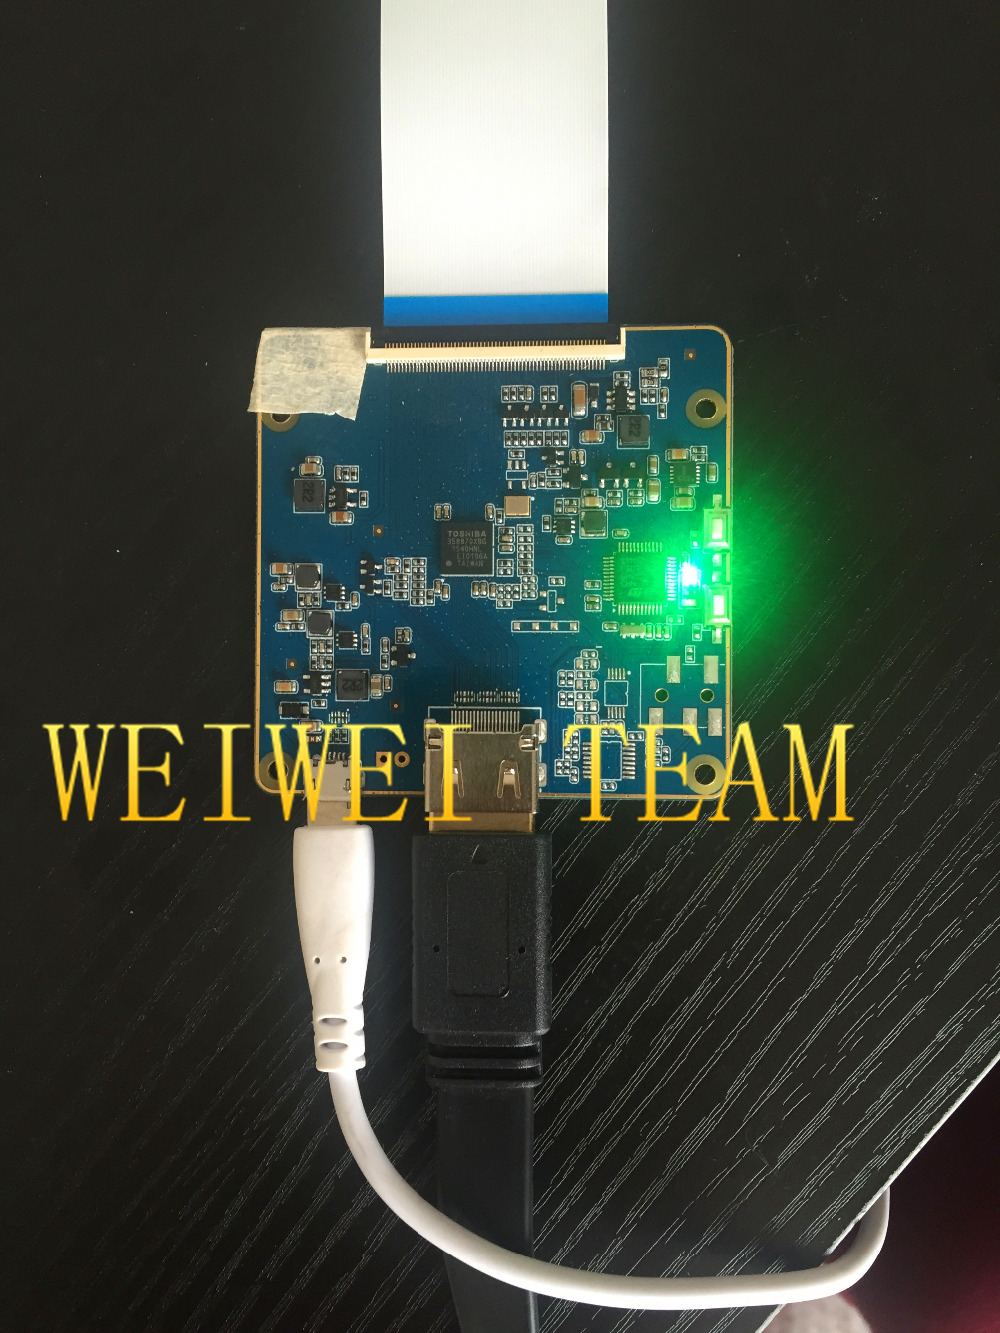 for 3D VR LCD Screen HDMI to MIPI 2560*1440 2K 5.5 inch Headset Glass Virtual Reality DIY CV1 Head Mounted PC 1440P